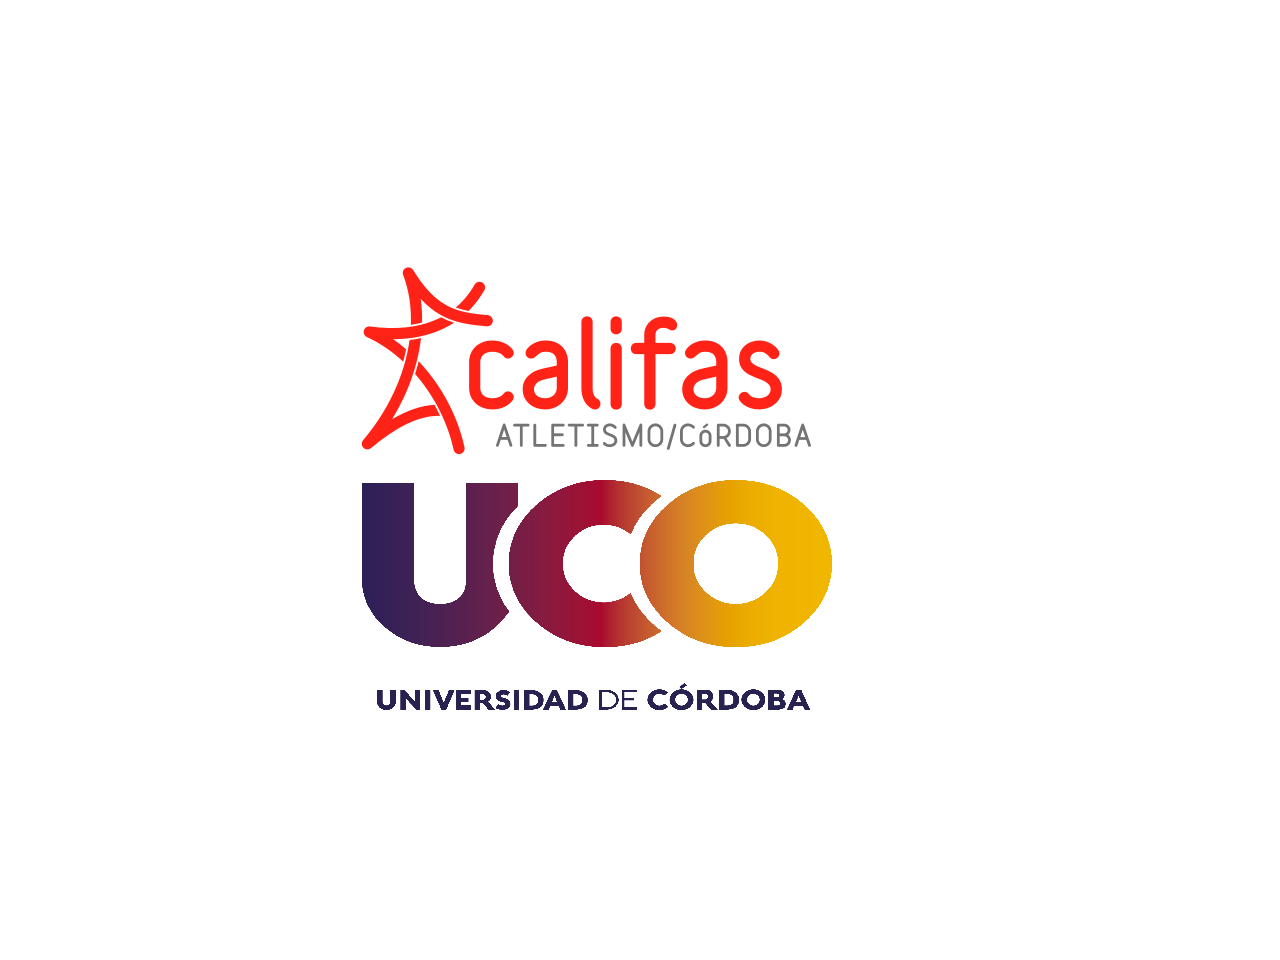 Club de atletismo Los Califas Logo